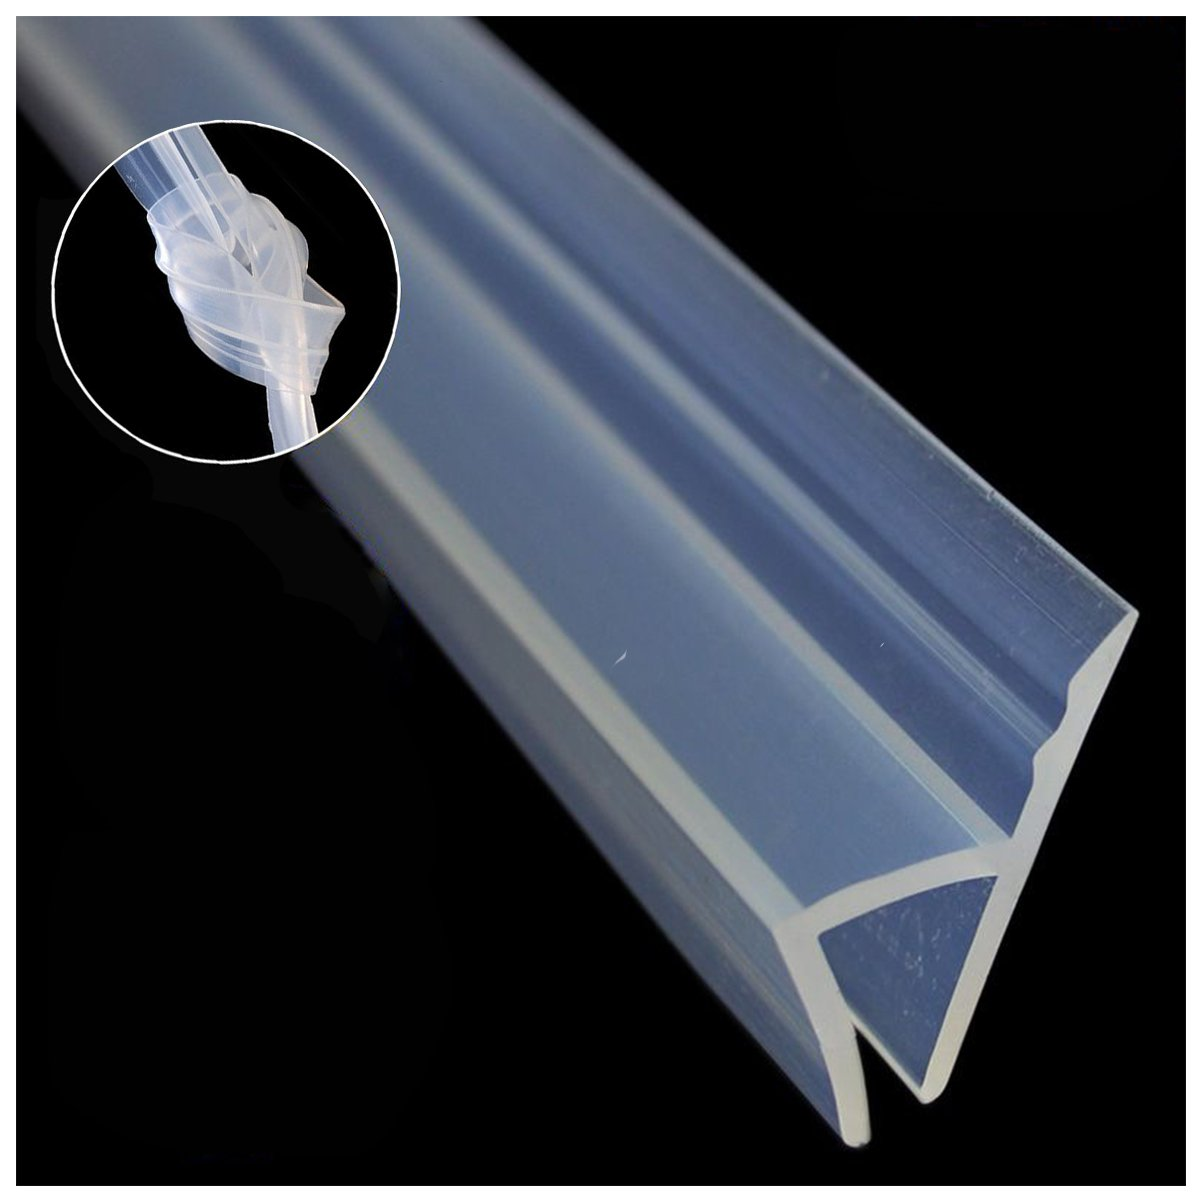 Shower Screen Door Seal, 3M Long Bath Glass Shower Door Seal Strip (No Silicone Sealant Include) Flexible for 4-6 mm Glass up to 8 mm Gap Durable Weatherproof Silicone SHOWEETN